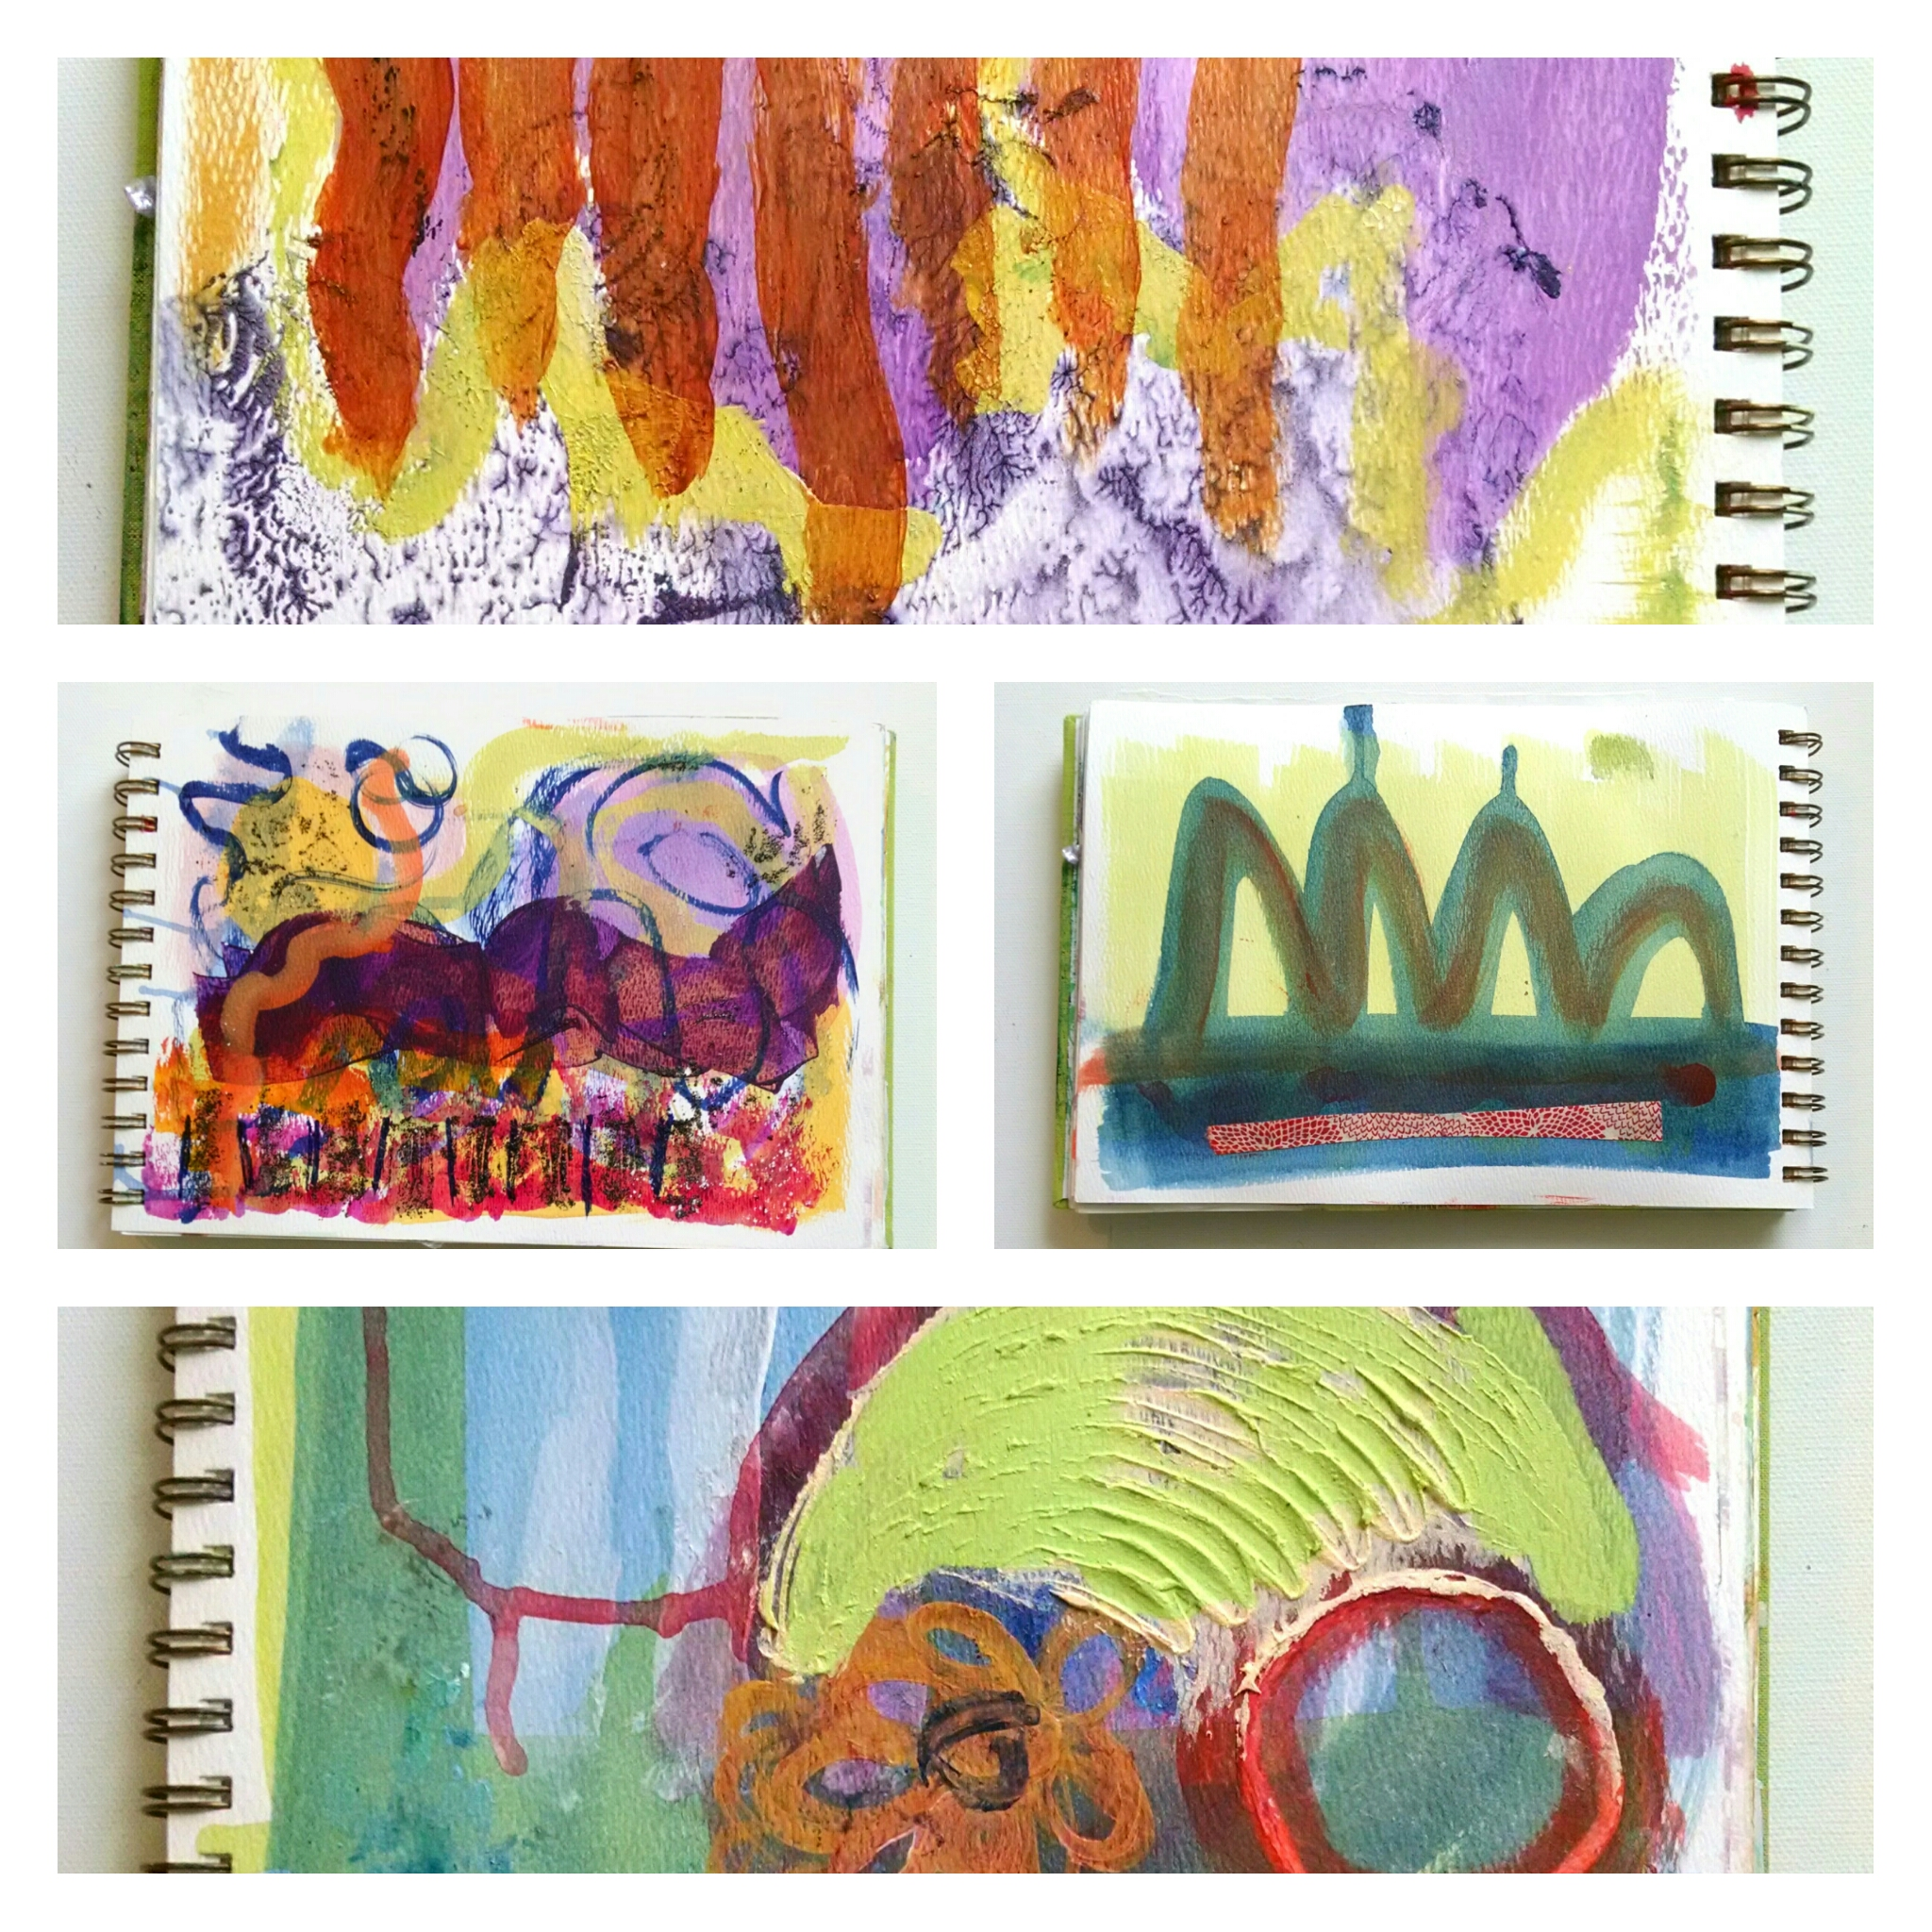 ©Christine Sauer,  paint journal experiments with acrylic paints.  STUDIO TIP:  Use wax paper or cooking parchment as interleaving to keep pages from sticking together.